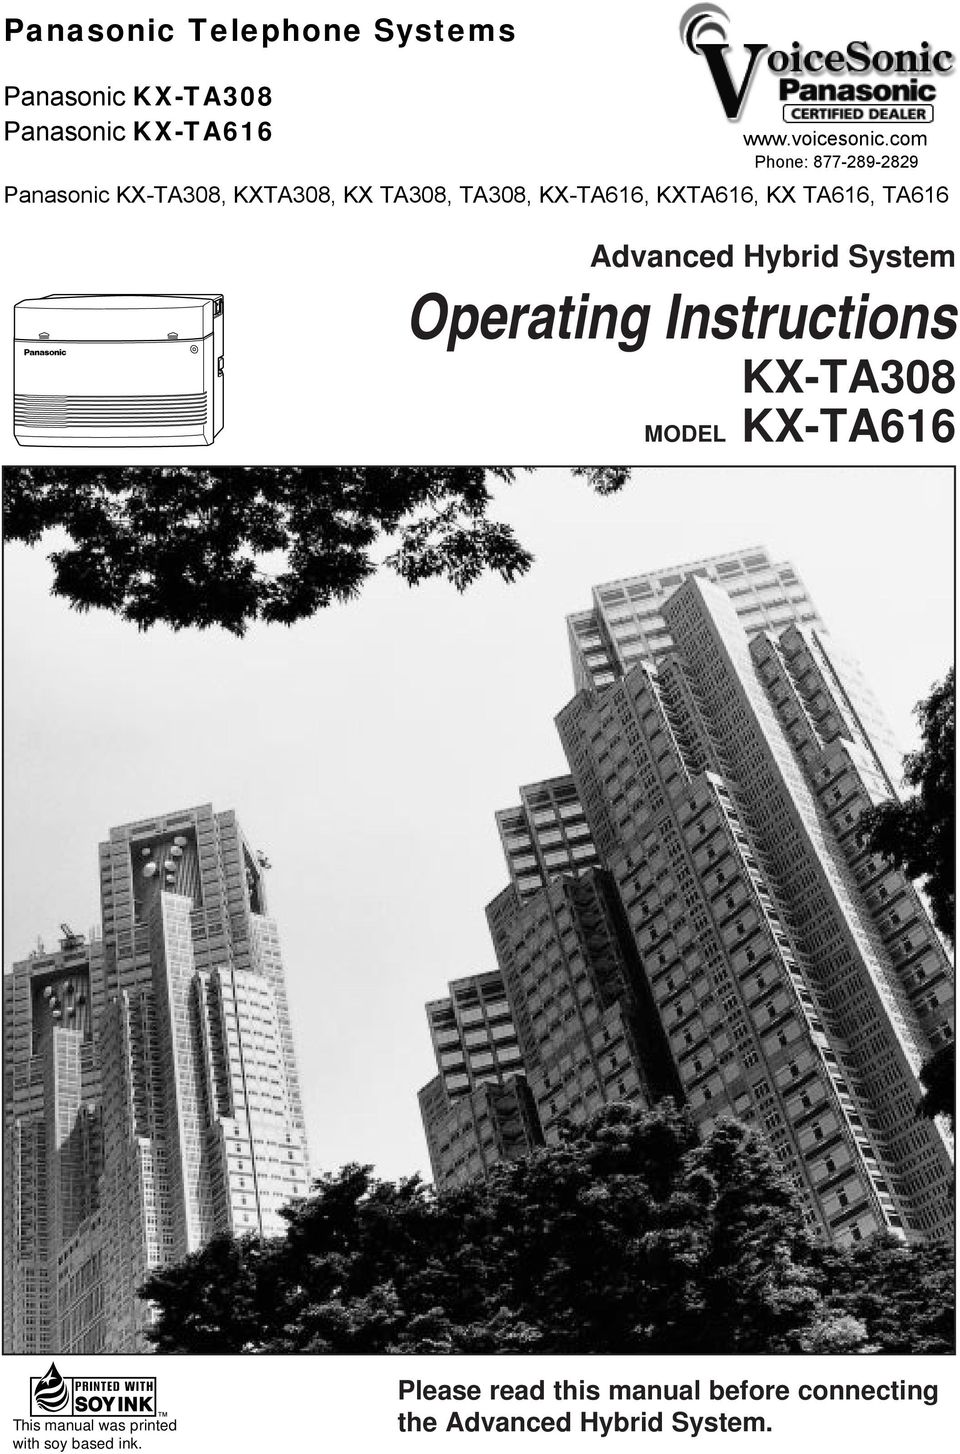 TA616, TA616 Advanced Hybrid System Operating Instructions KX-TA308 MODEL KX-TA616 This